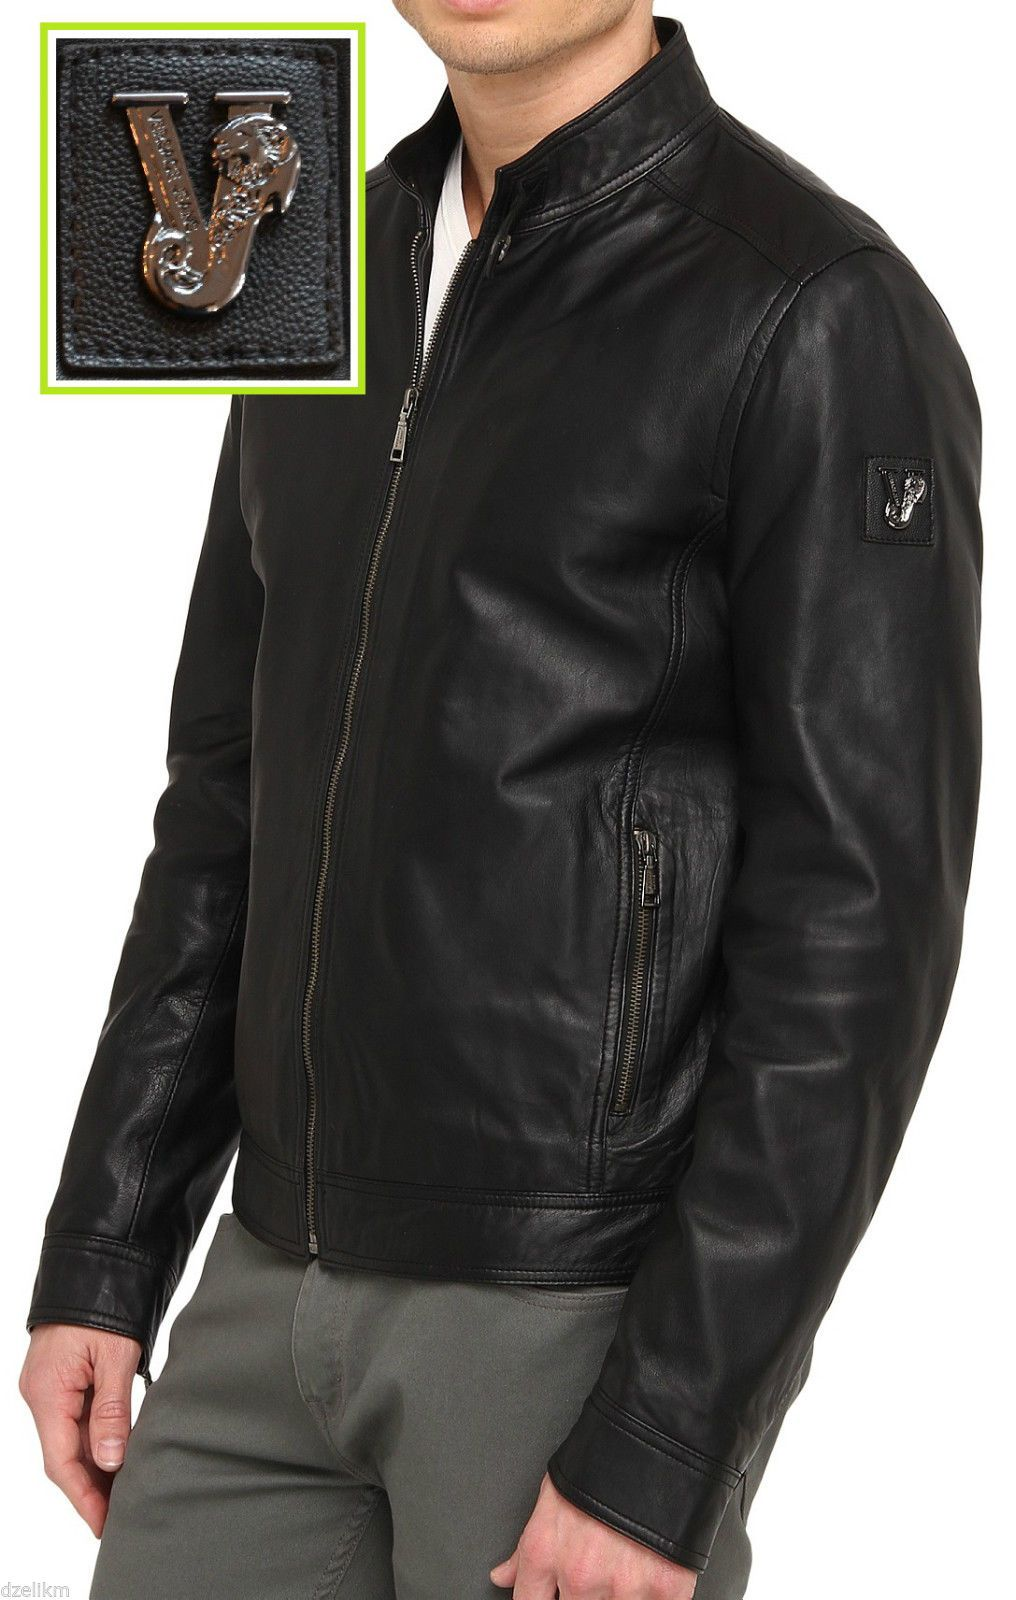 nwt versace jeans lamb leather moto jacket in black size m